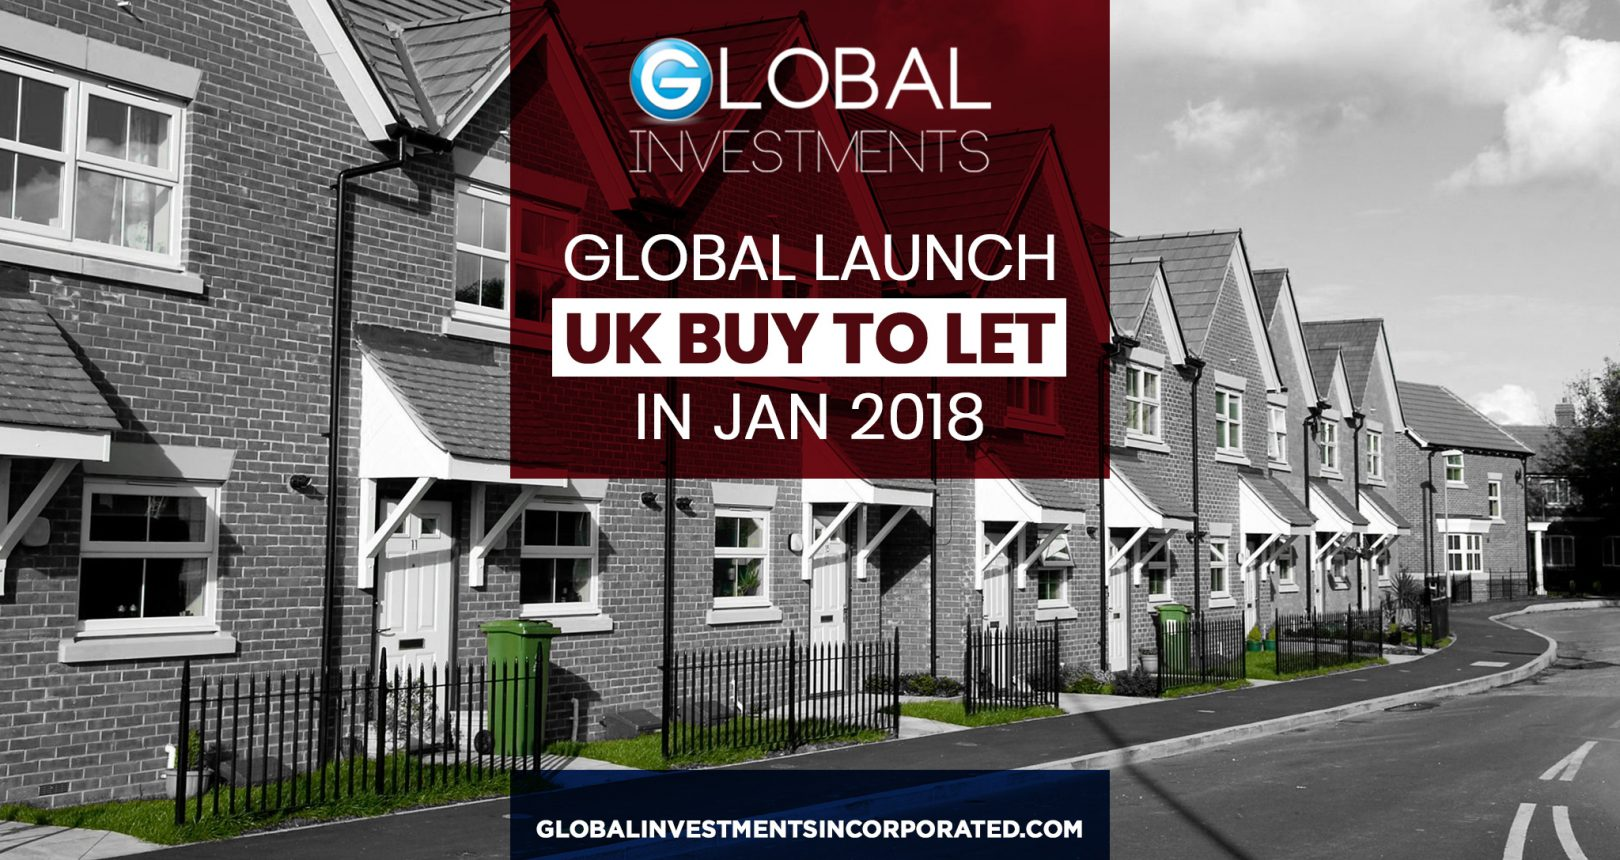 GLOBAL LAUNCHES IN UK